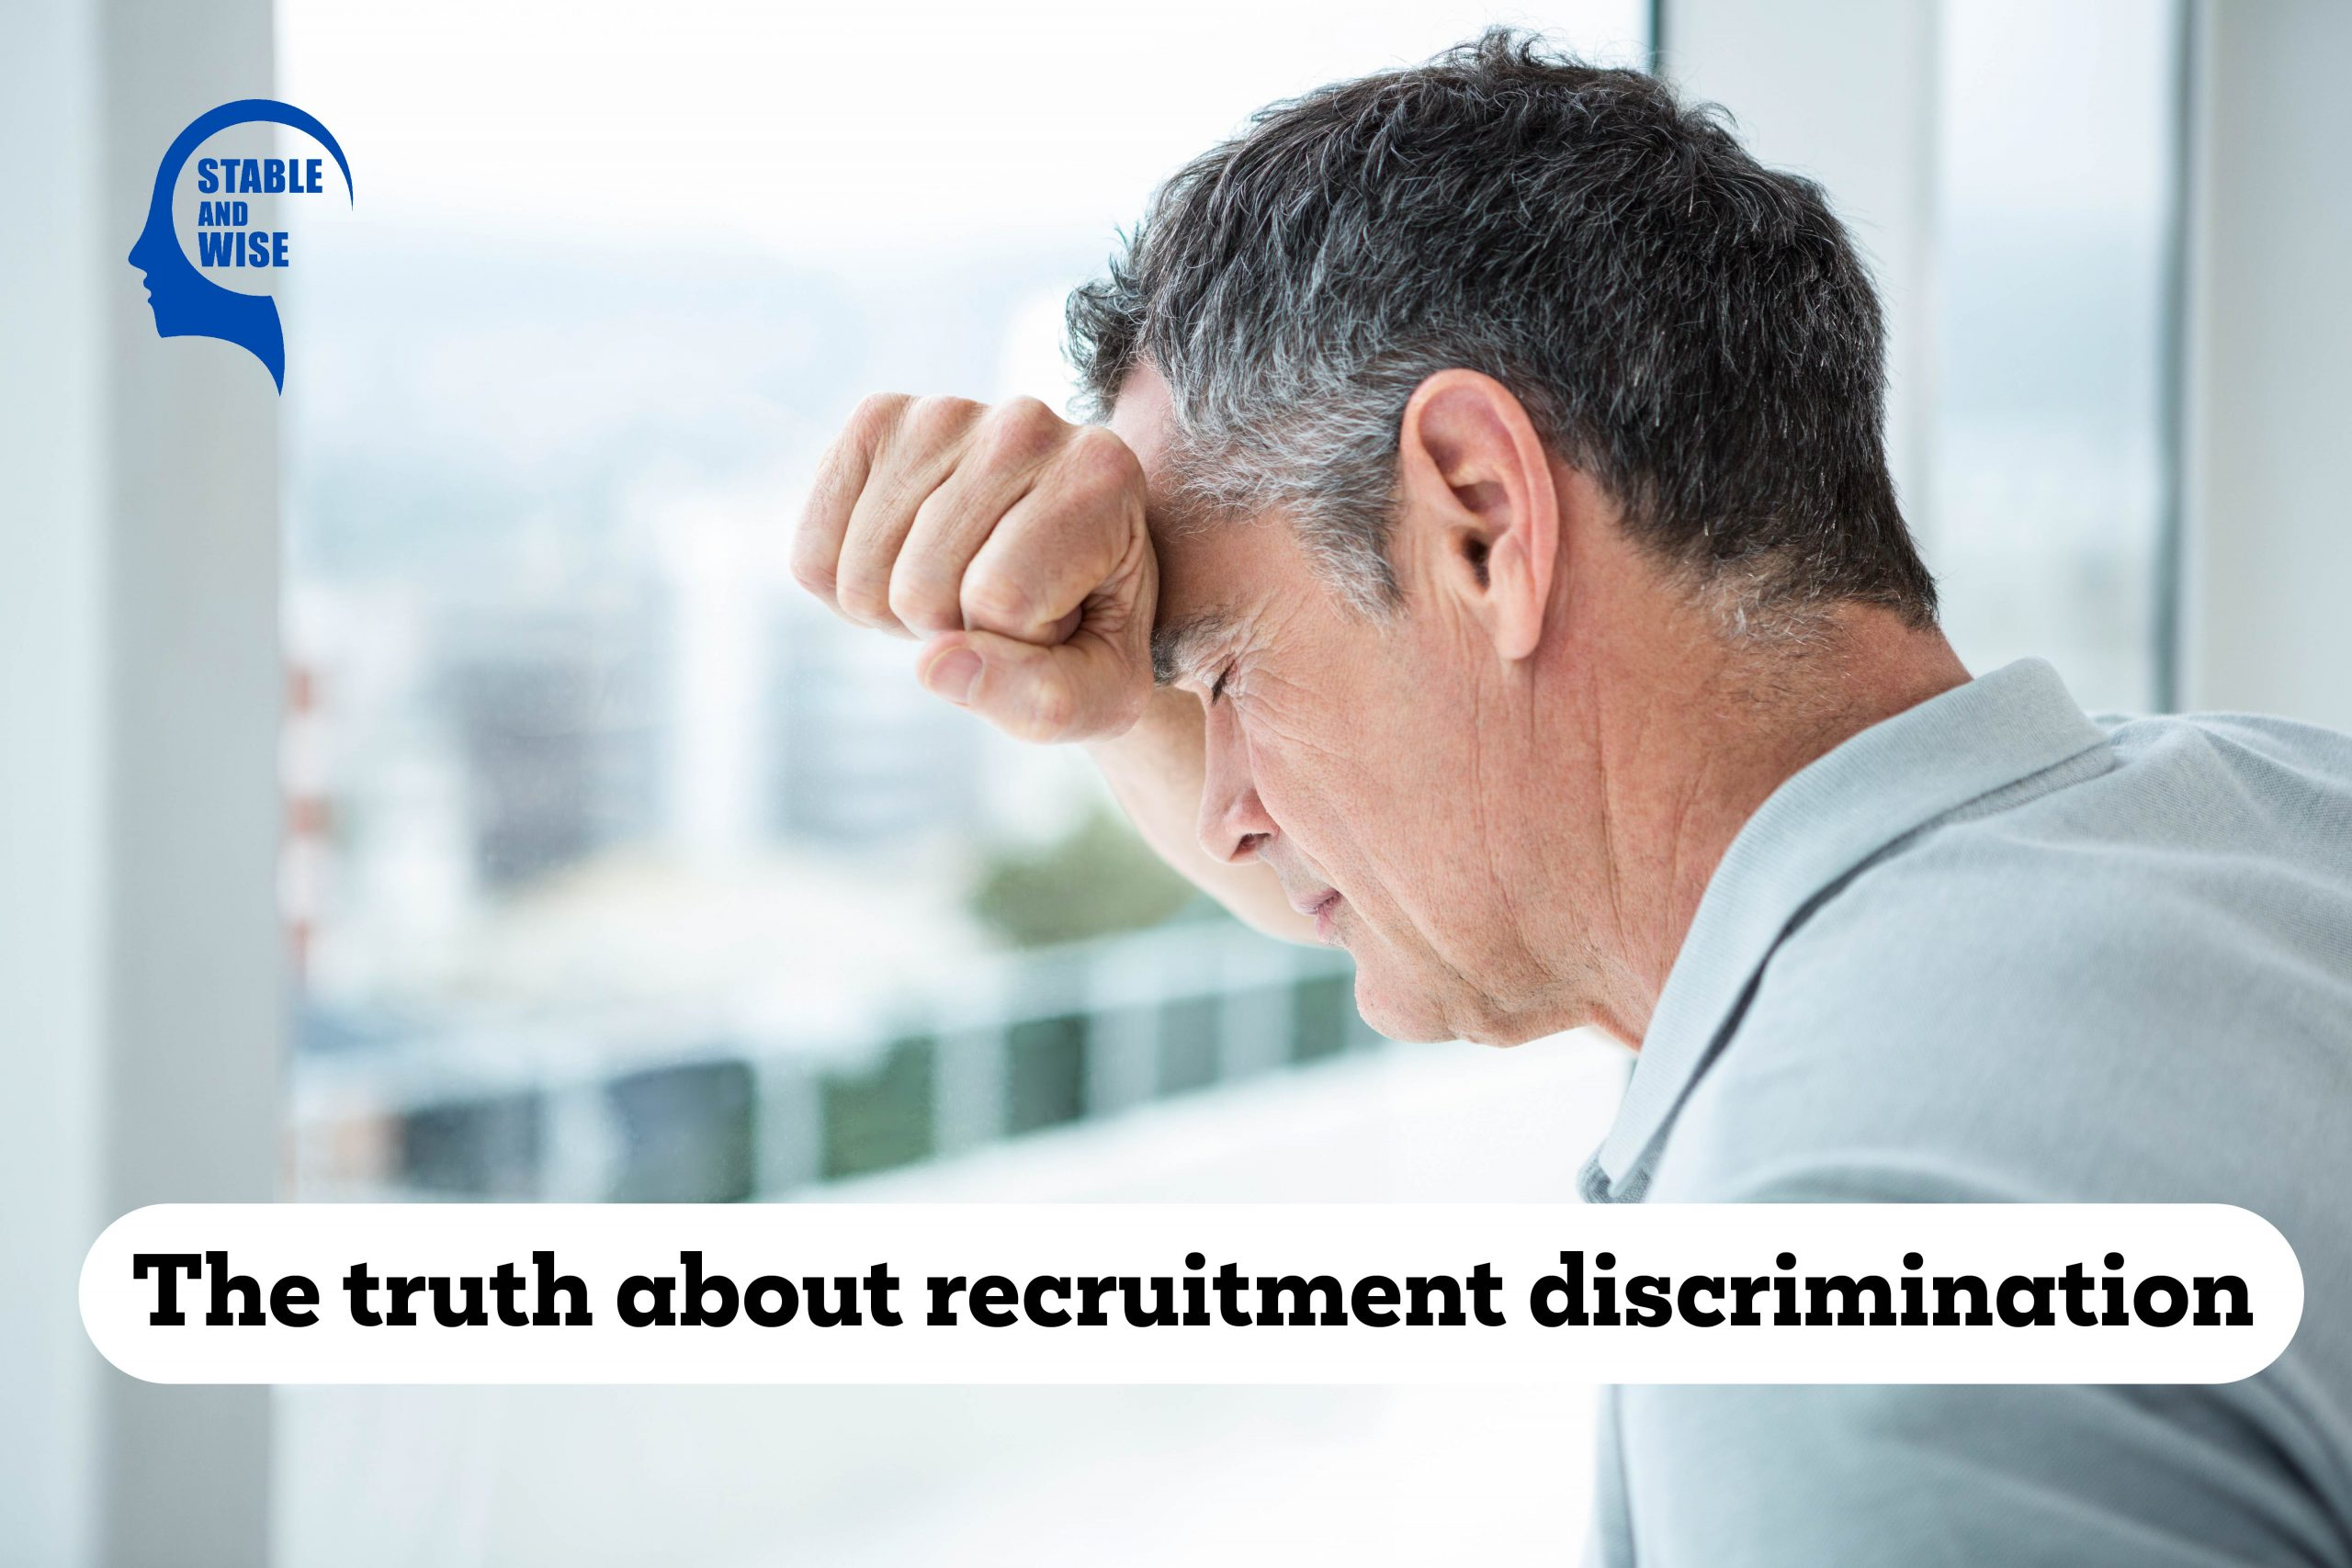 Recruitment discrimination; a man leaning against a window